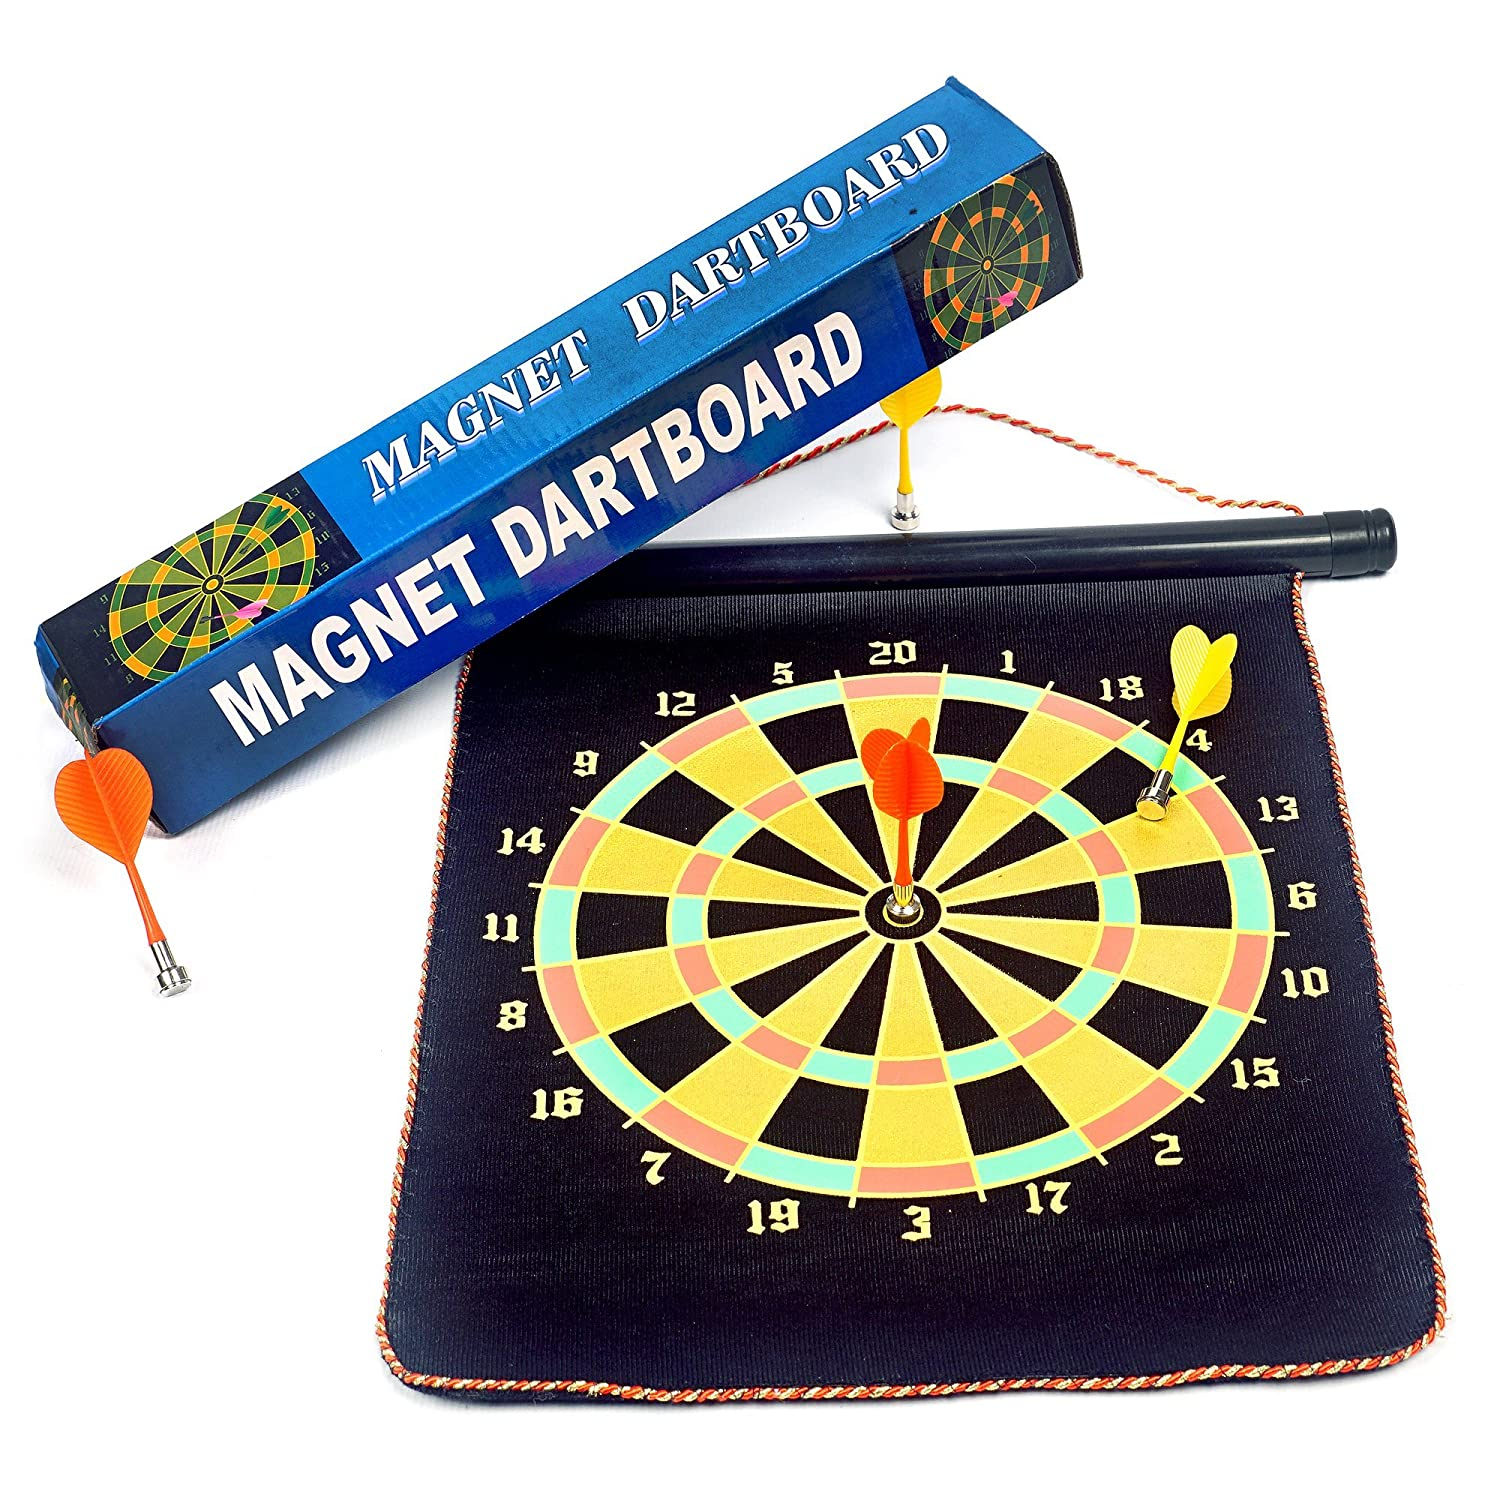 Magnetic Dart Board - Imported (Top Quality) - Reasonable Rate